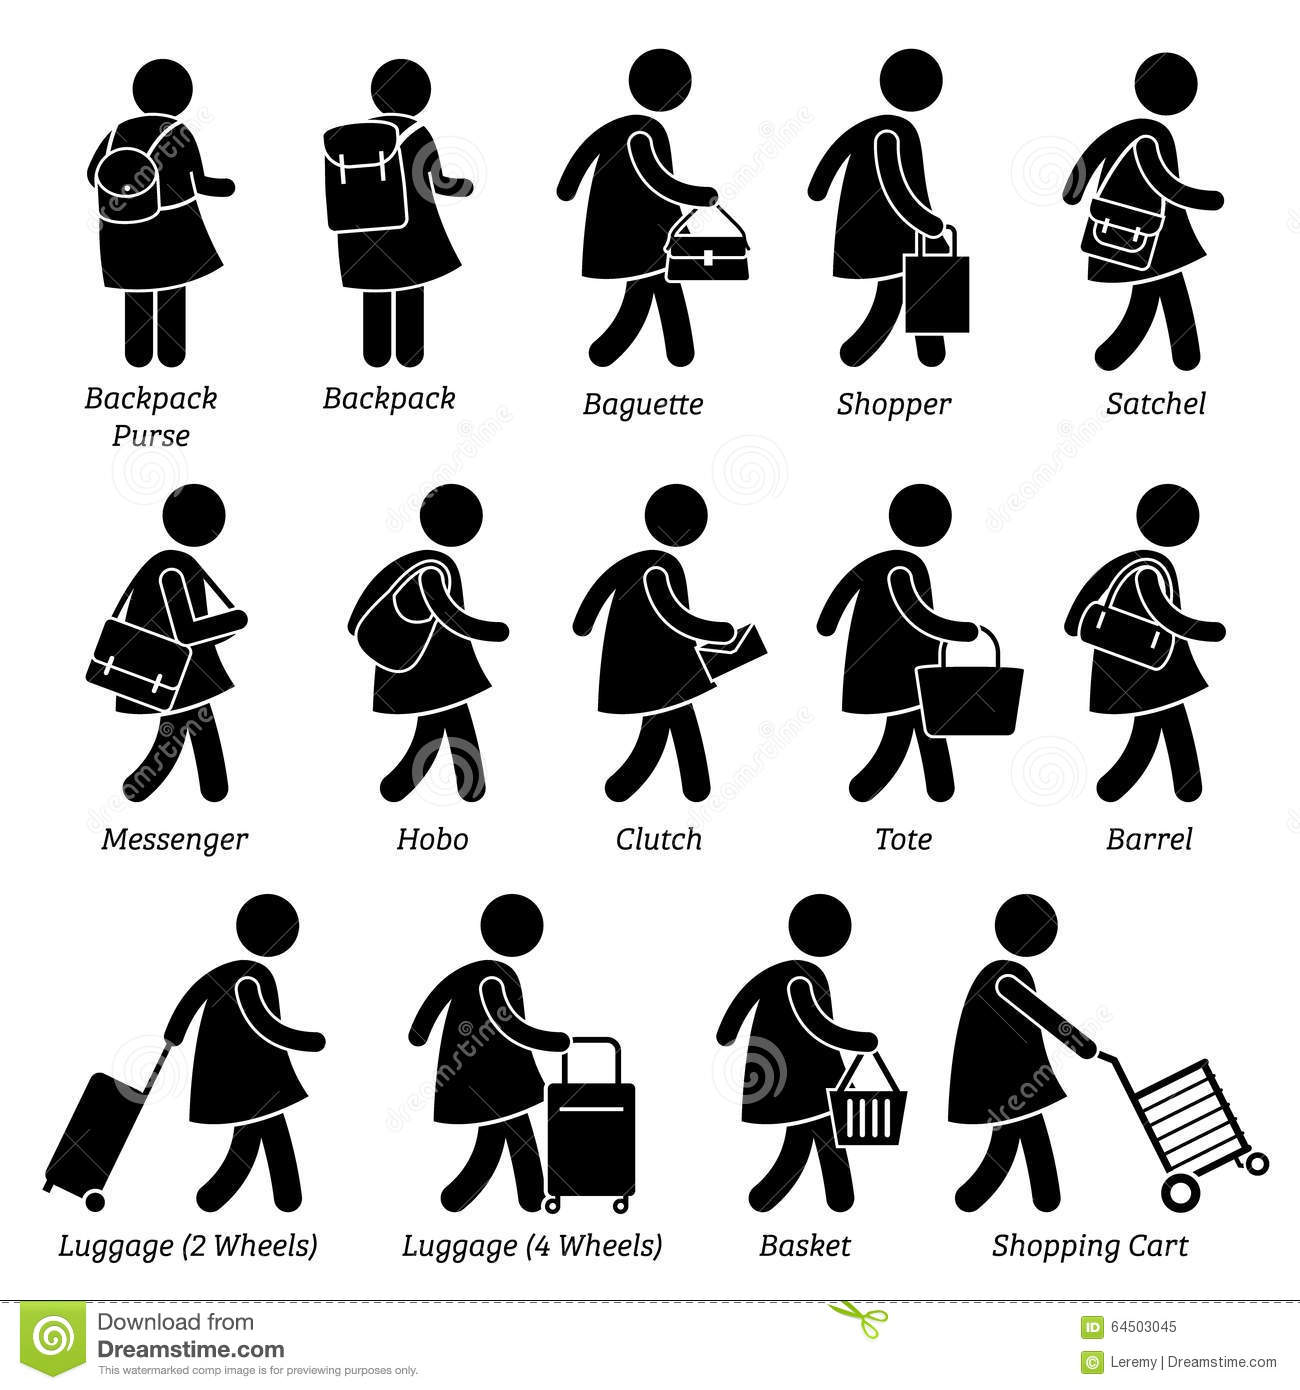 Woman Bags Purse Wallet Luggage Design Clipart Stock